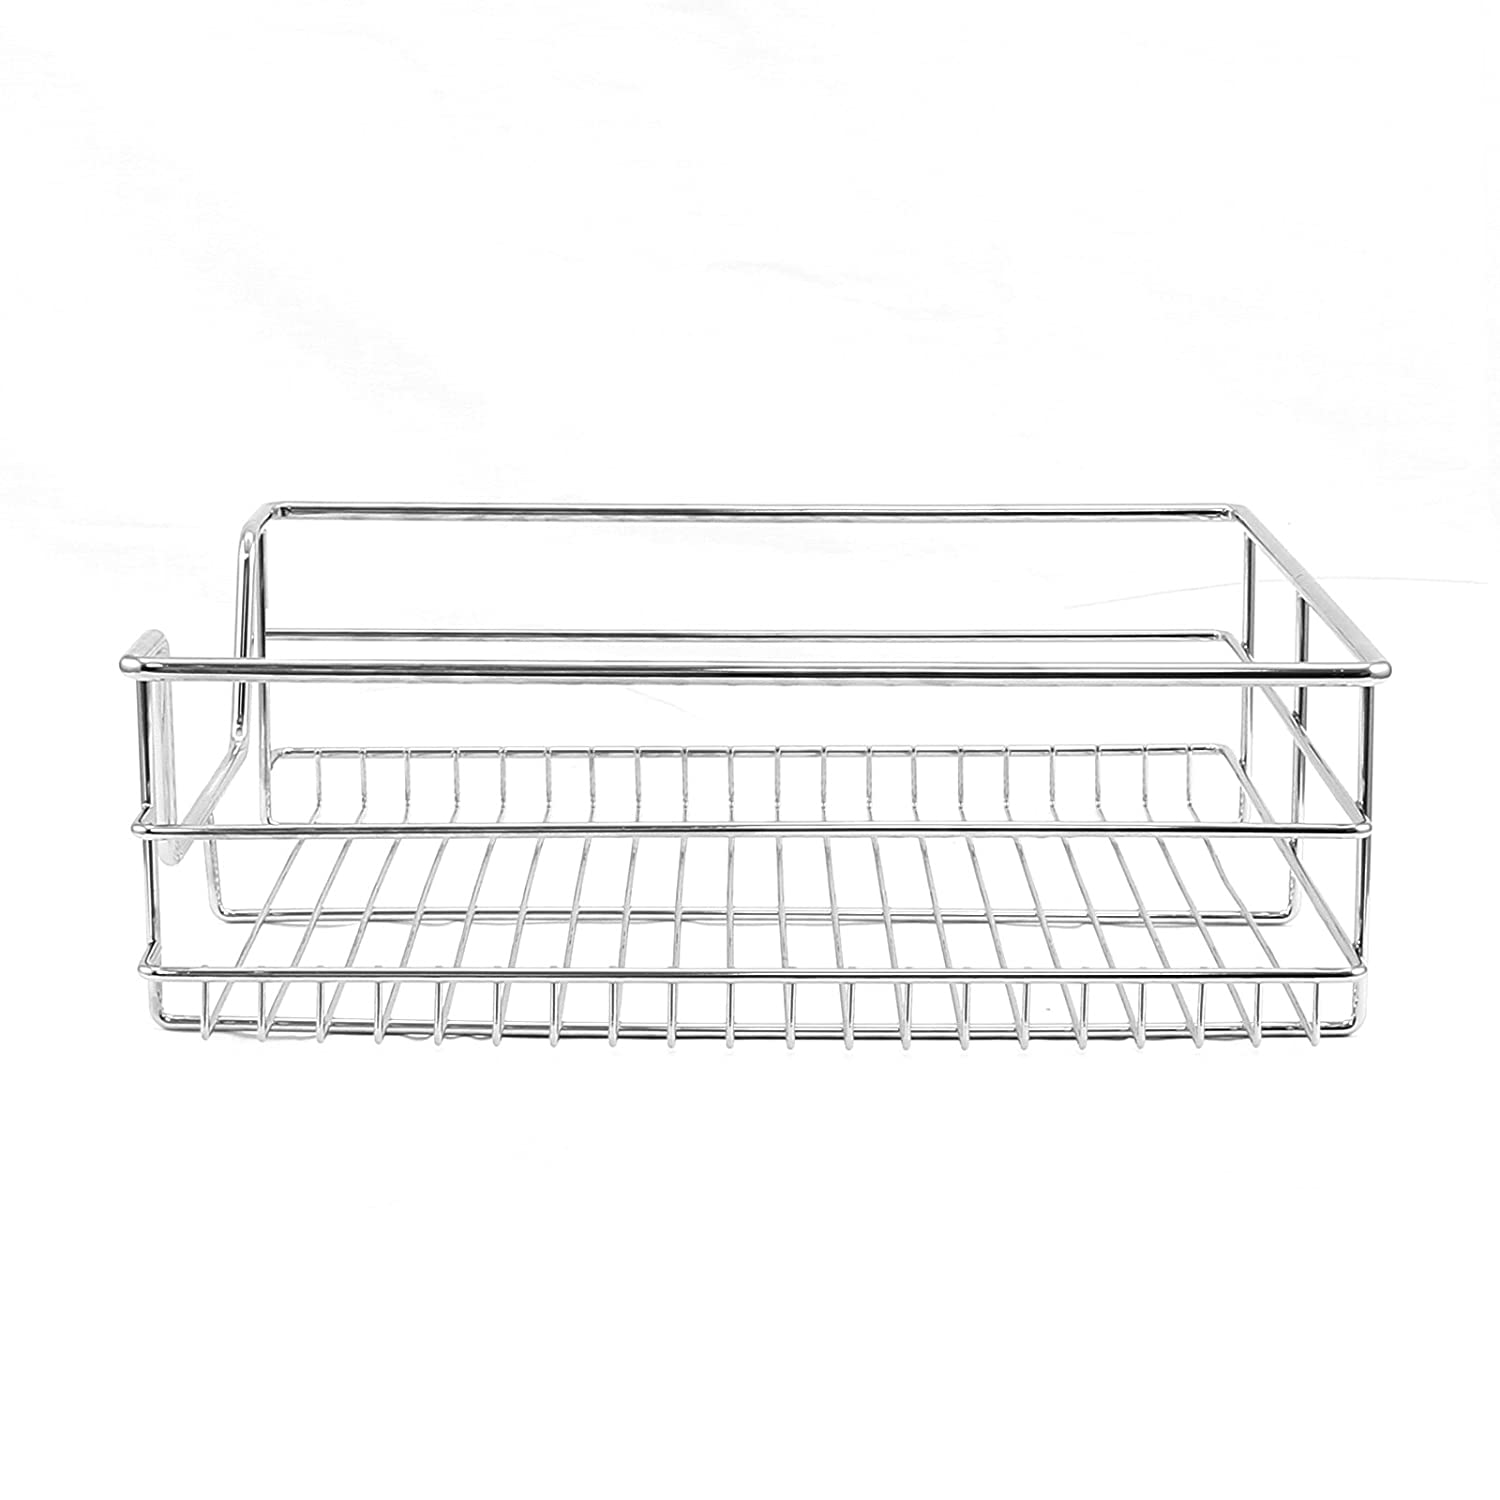 KuKoo 3 x Kitchen Pull Out Soft Close Baskets, 600mm Wide Cabinet ...